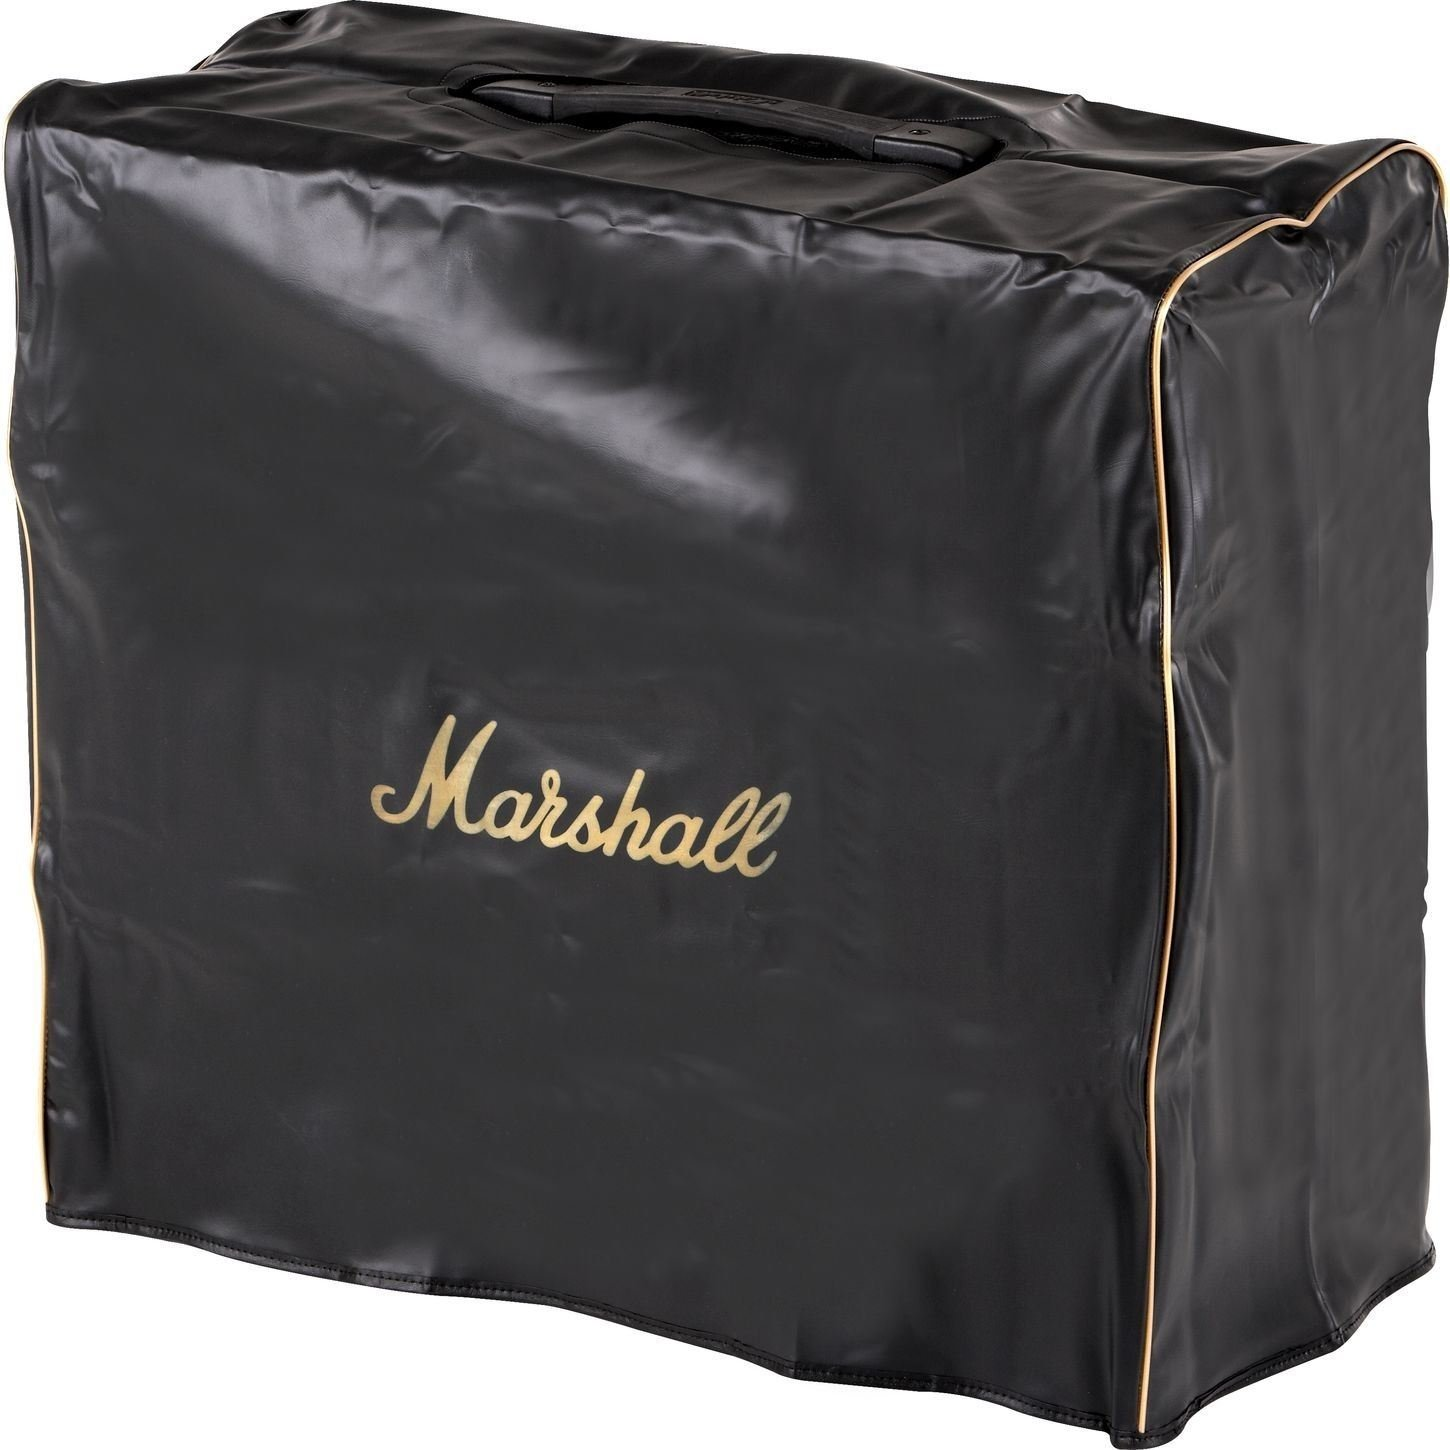 Marshall Amp Cover for AVT112 Cabinet by Marshall